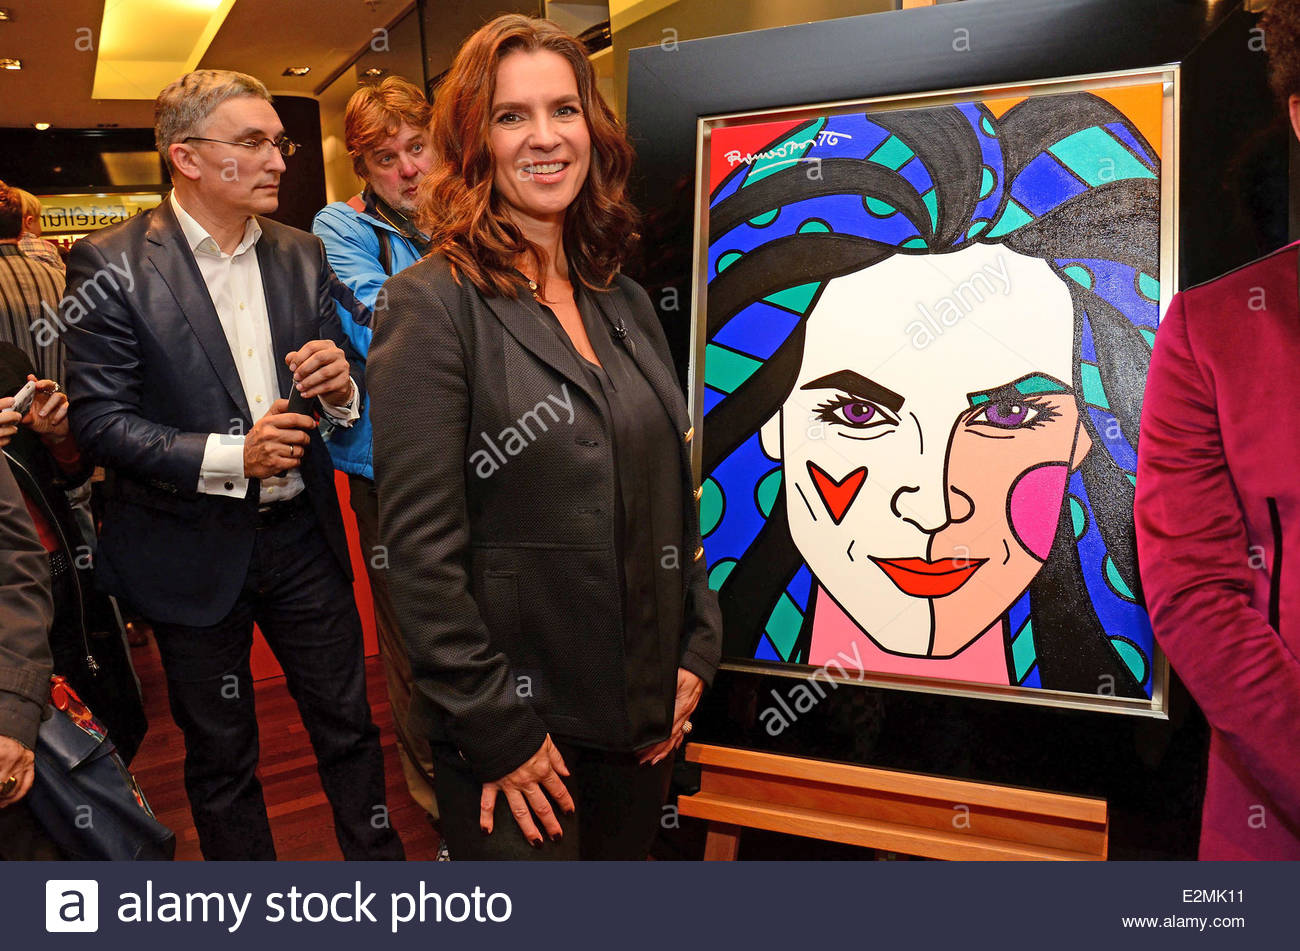 Mensing Galerie katarina witt pictured by romero britto and the artist at galerie